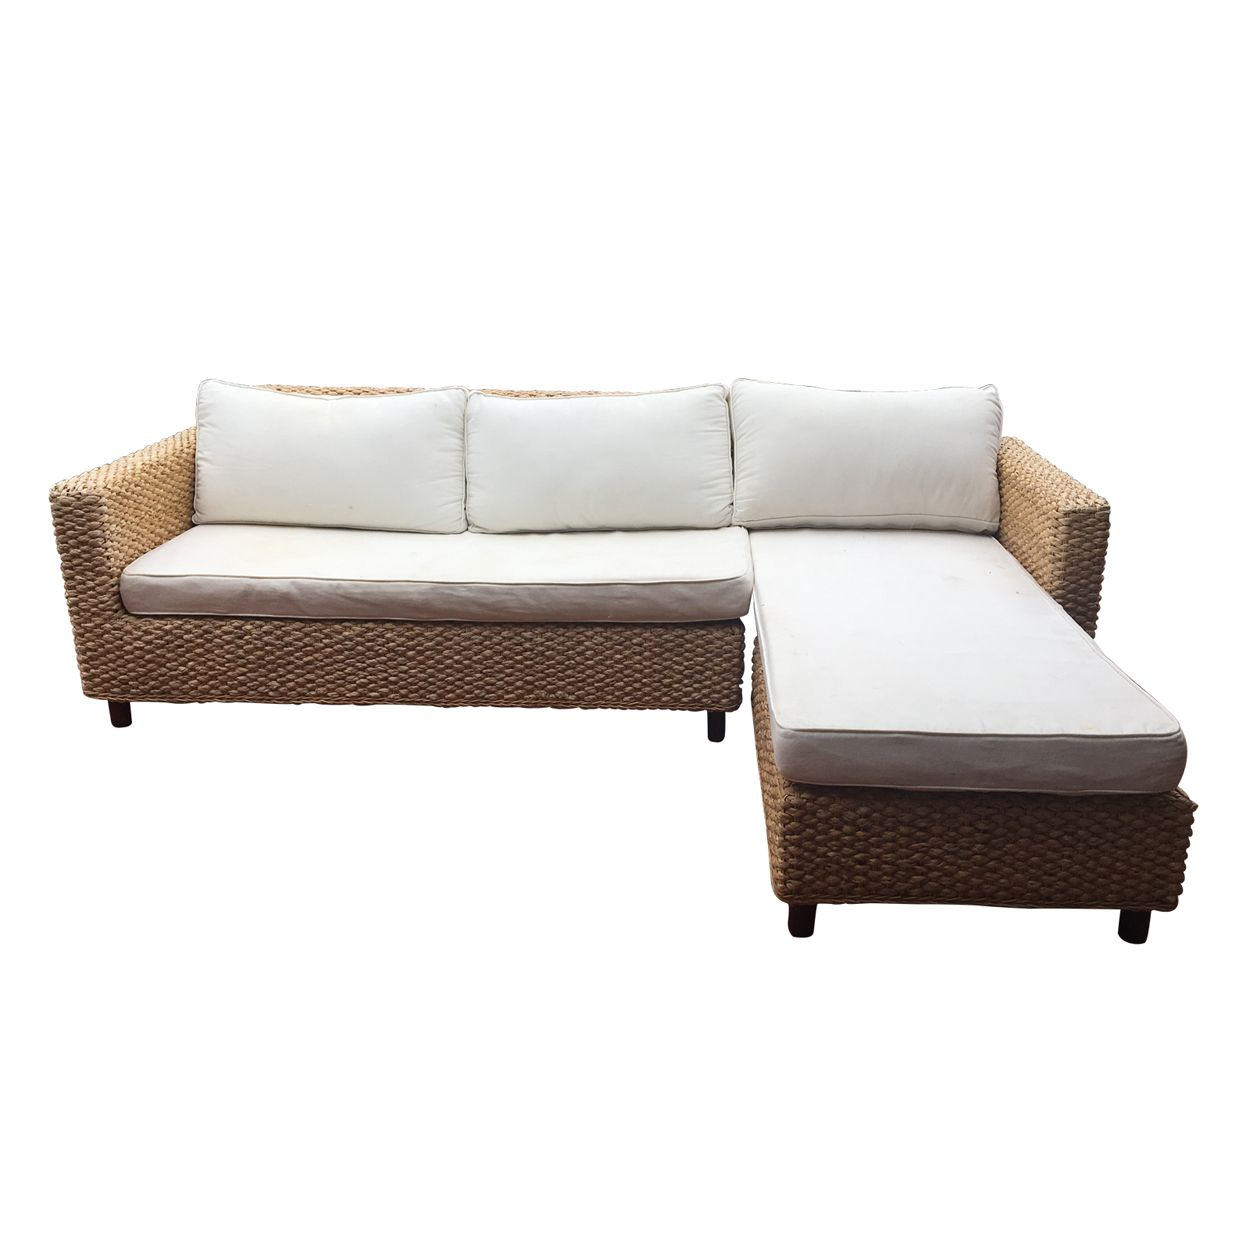 Bring A Touch Of The Hamptons To Your Home With This Stylish Corner Rattan L Shaped Suite L Shaped Sofa L Shaped Couch Sofa